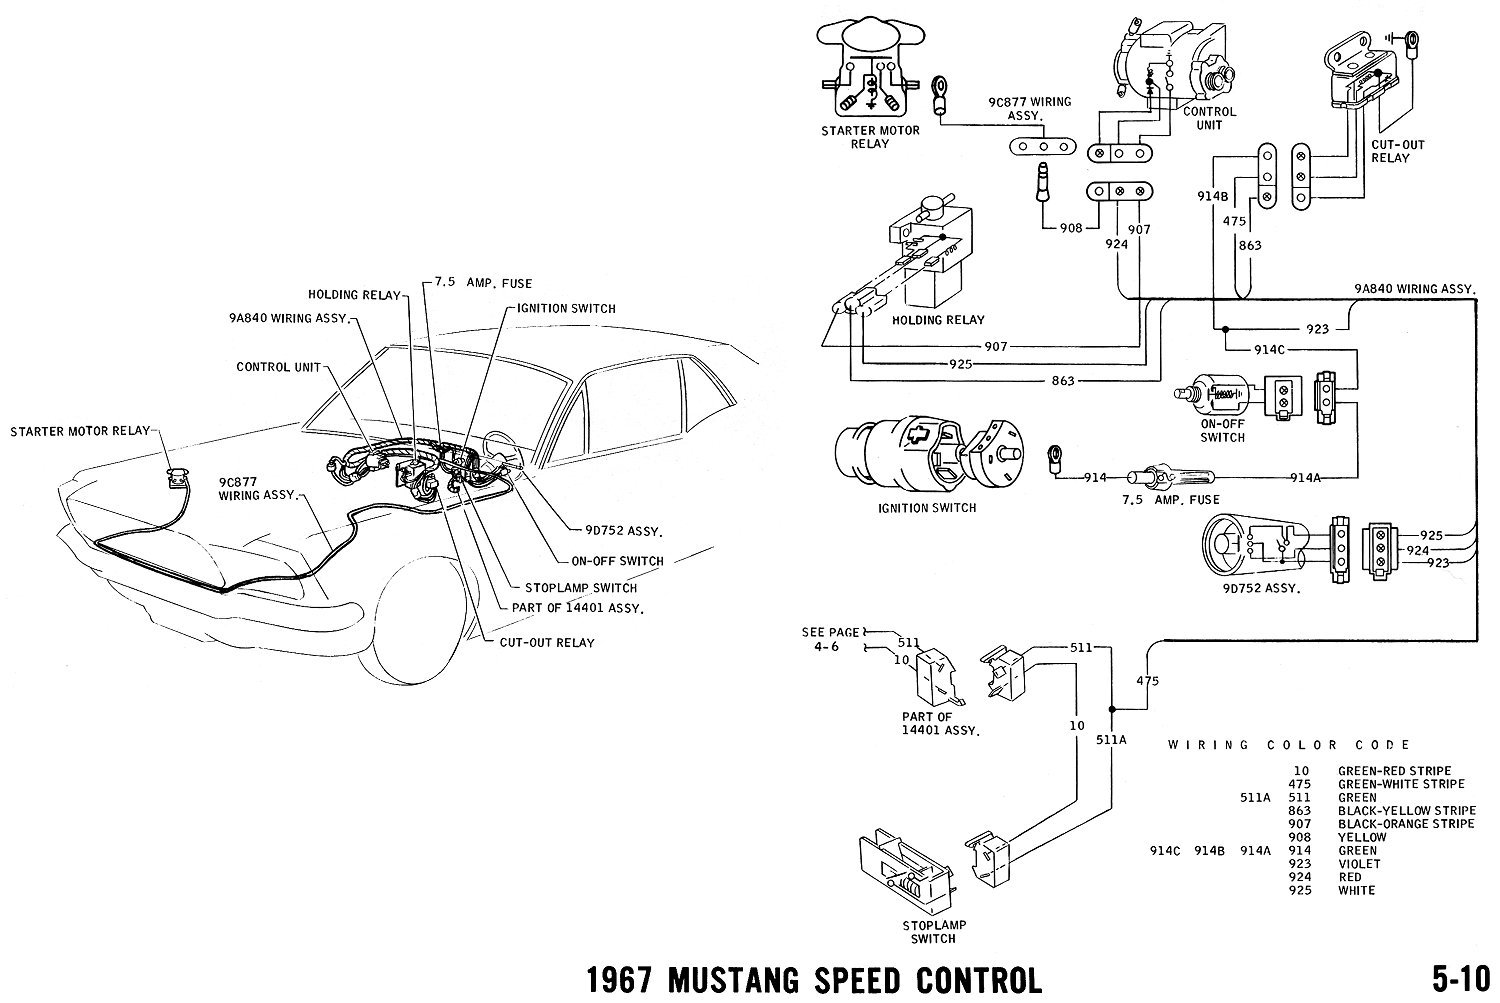 67speed 1967 mustang wiring and vacuum diagrams average joe restoration 1969 Ford Mustang Wiring Diagram at bayanpartner.co